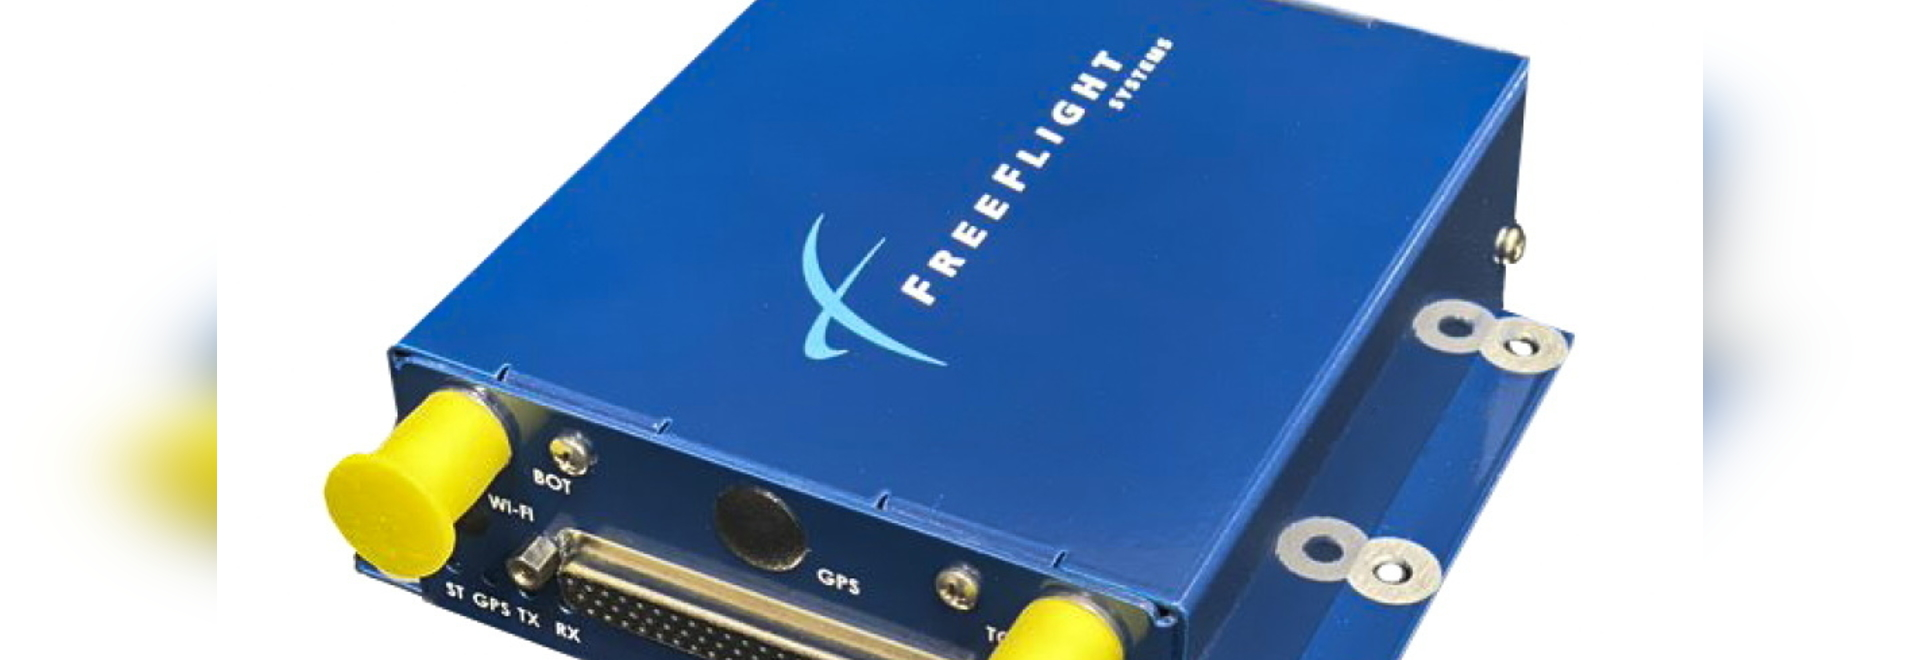 FreeFlight Datalink Offers Dual-band ADS-B